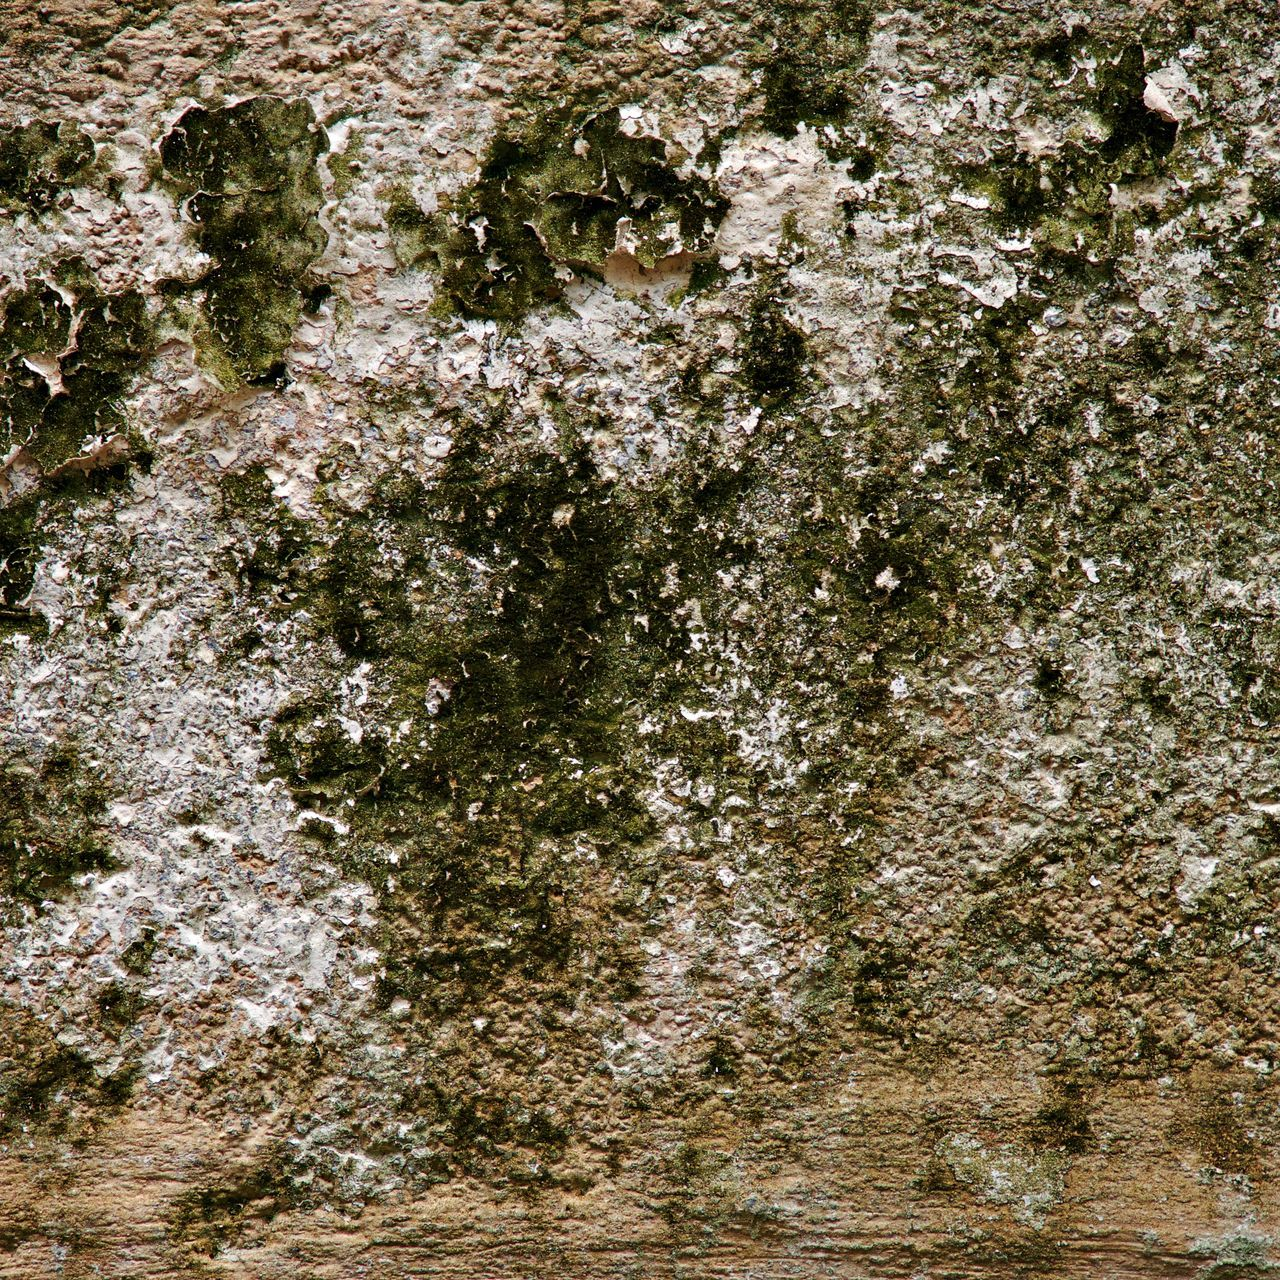 textured, nature, rock - object, full frame, no people, tree, growth, day, outdoors, close-up, water